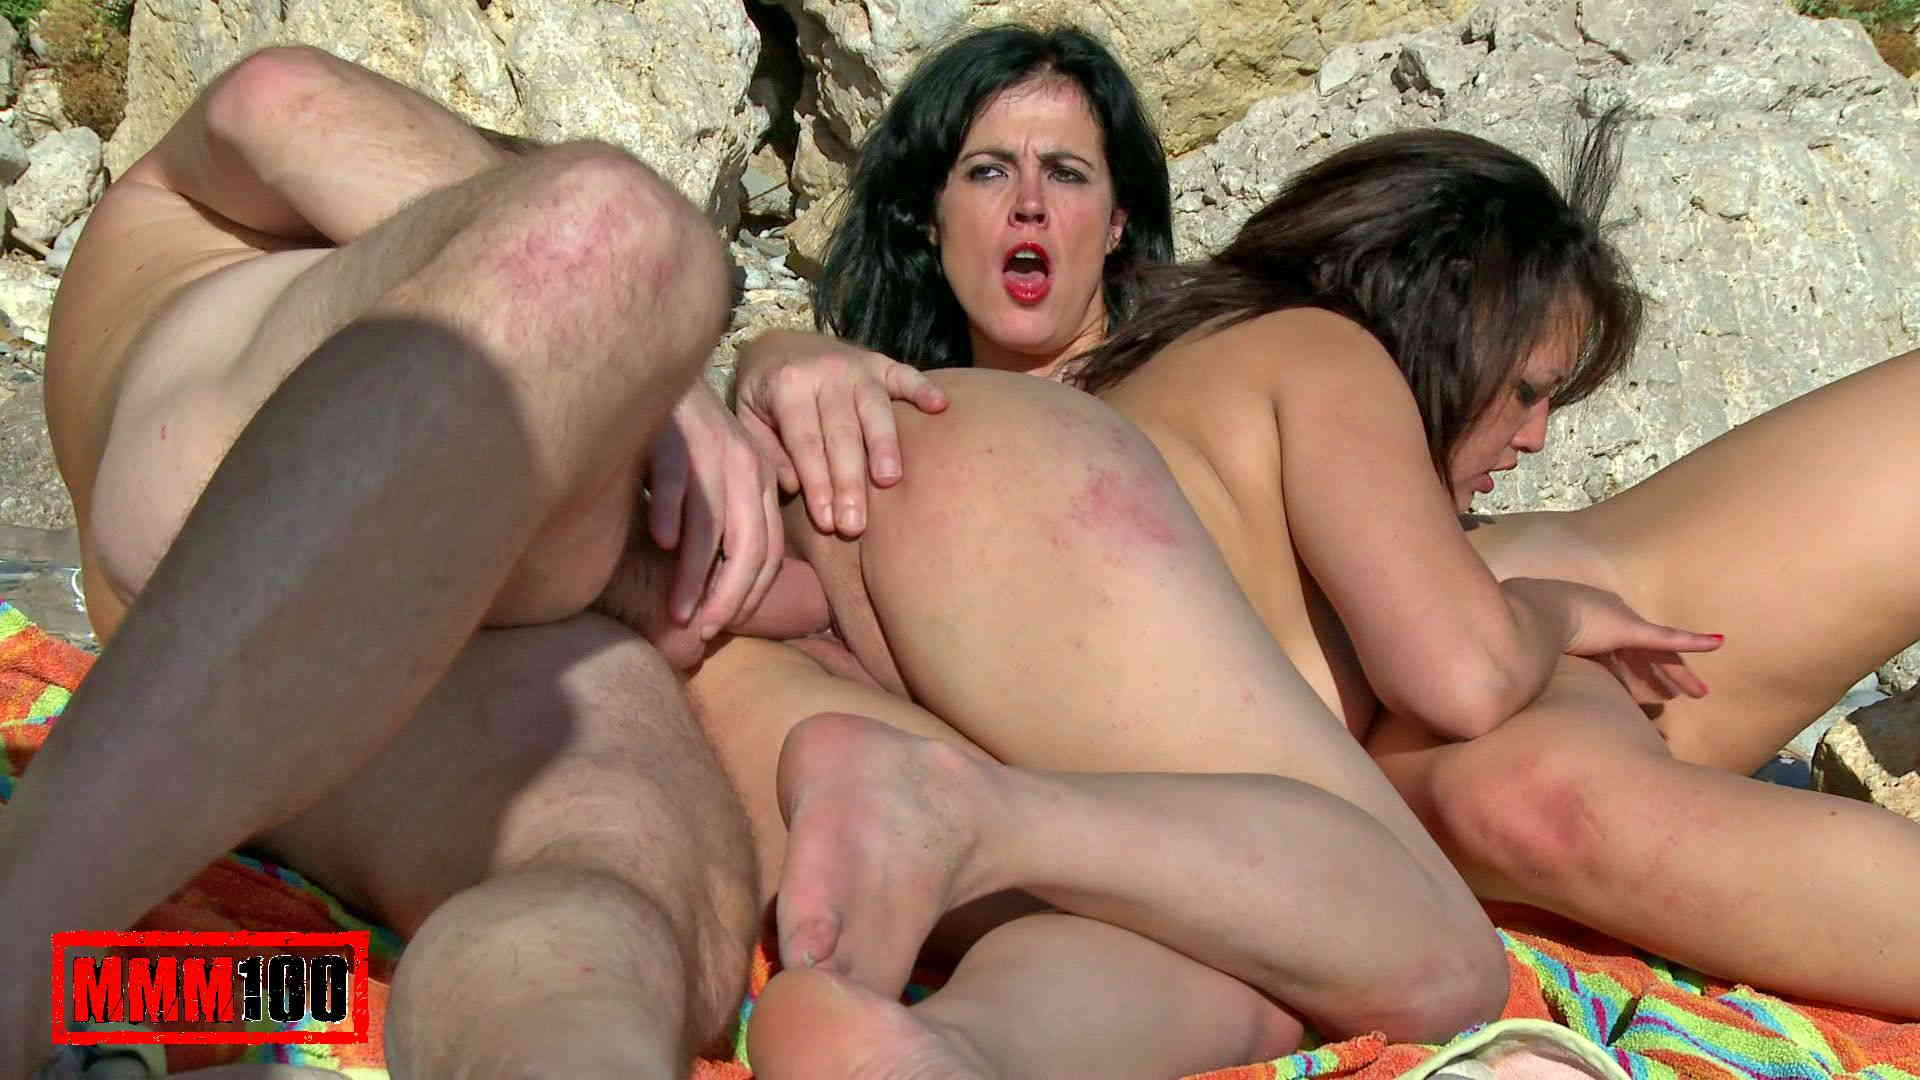 Family adventures on sex videos, nice lesben pussy